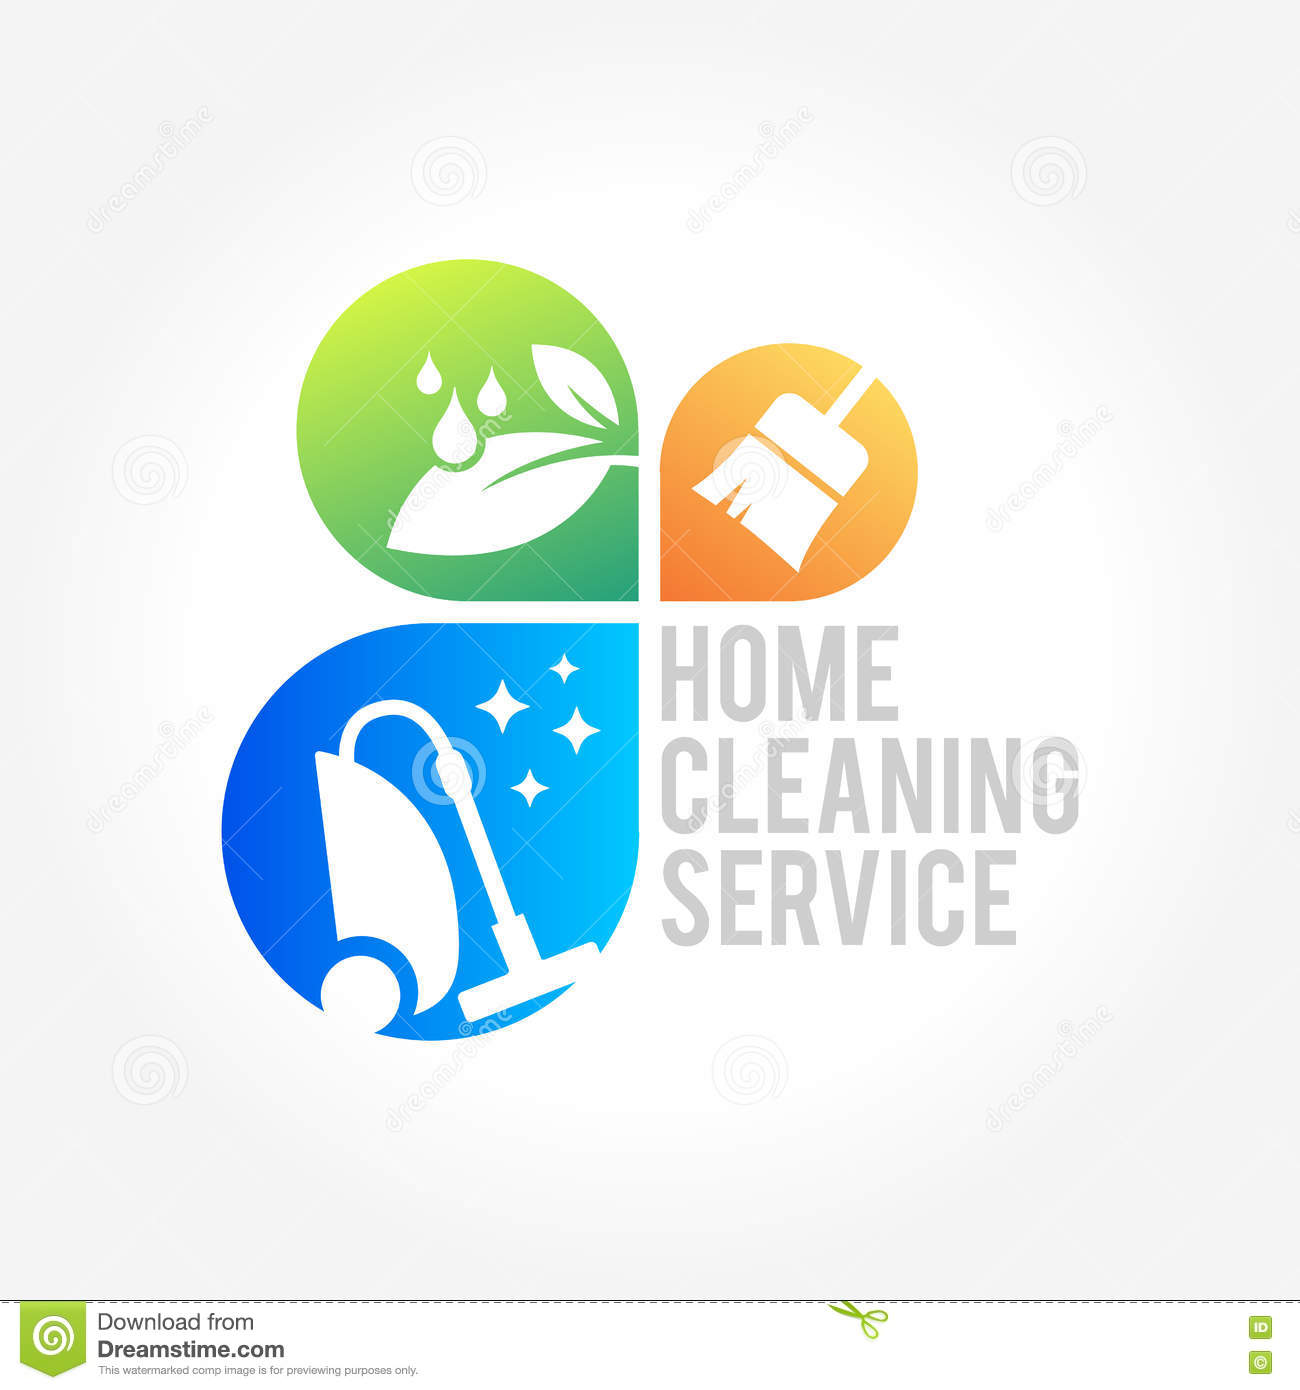 How To Start A Cleaning Business by Green Cleaning Products LLC